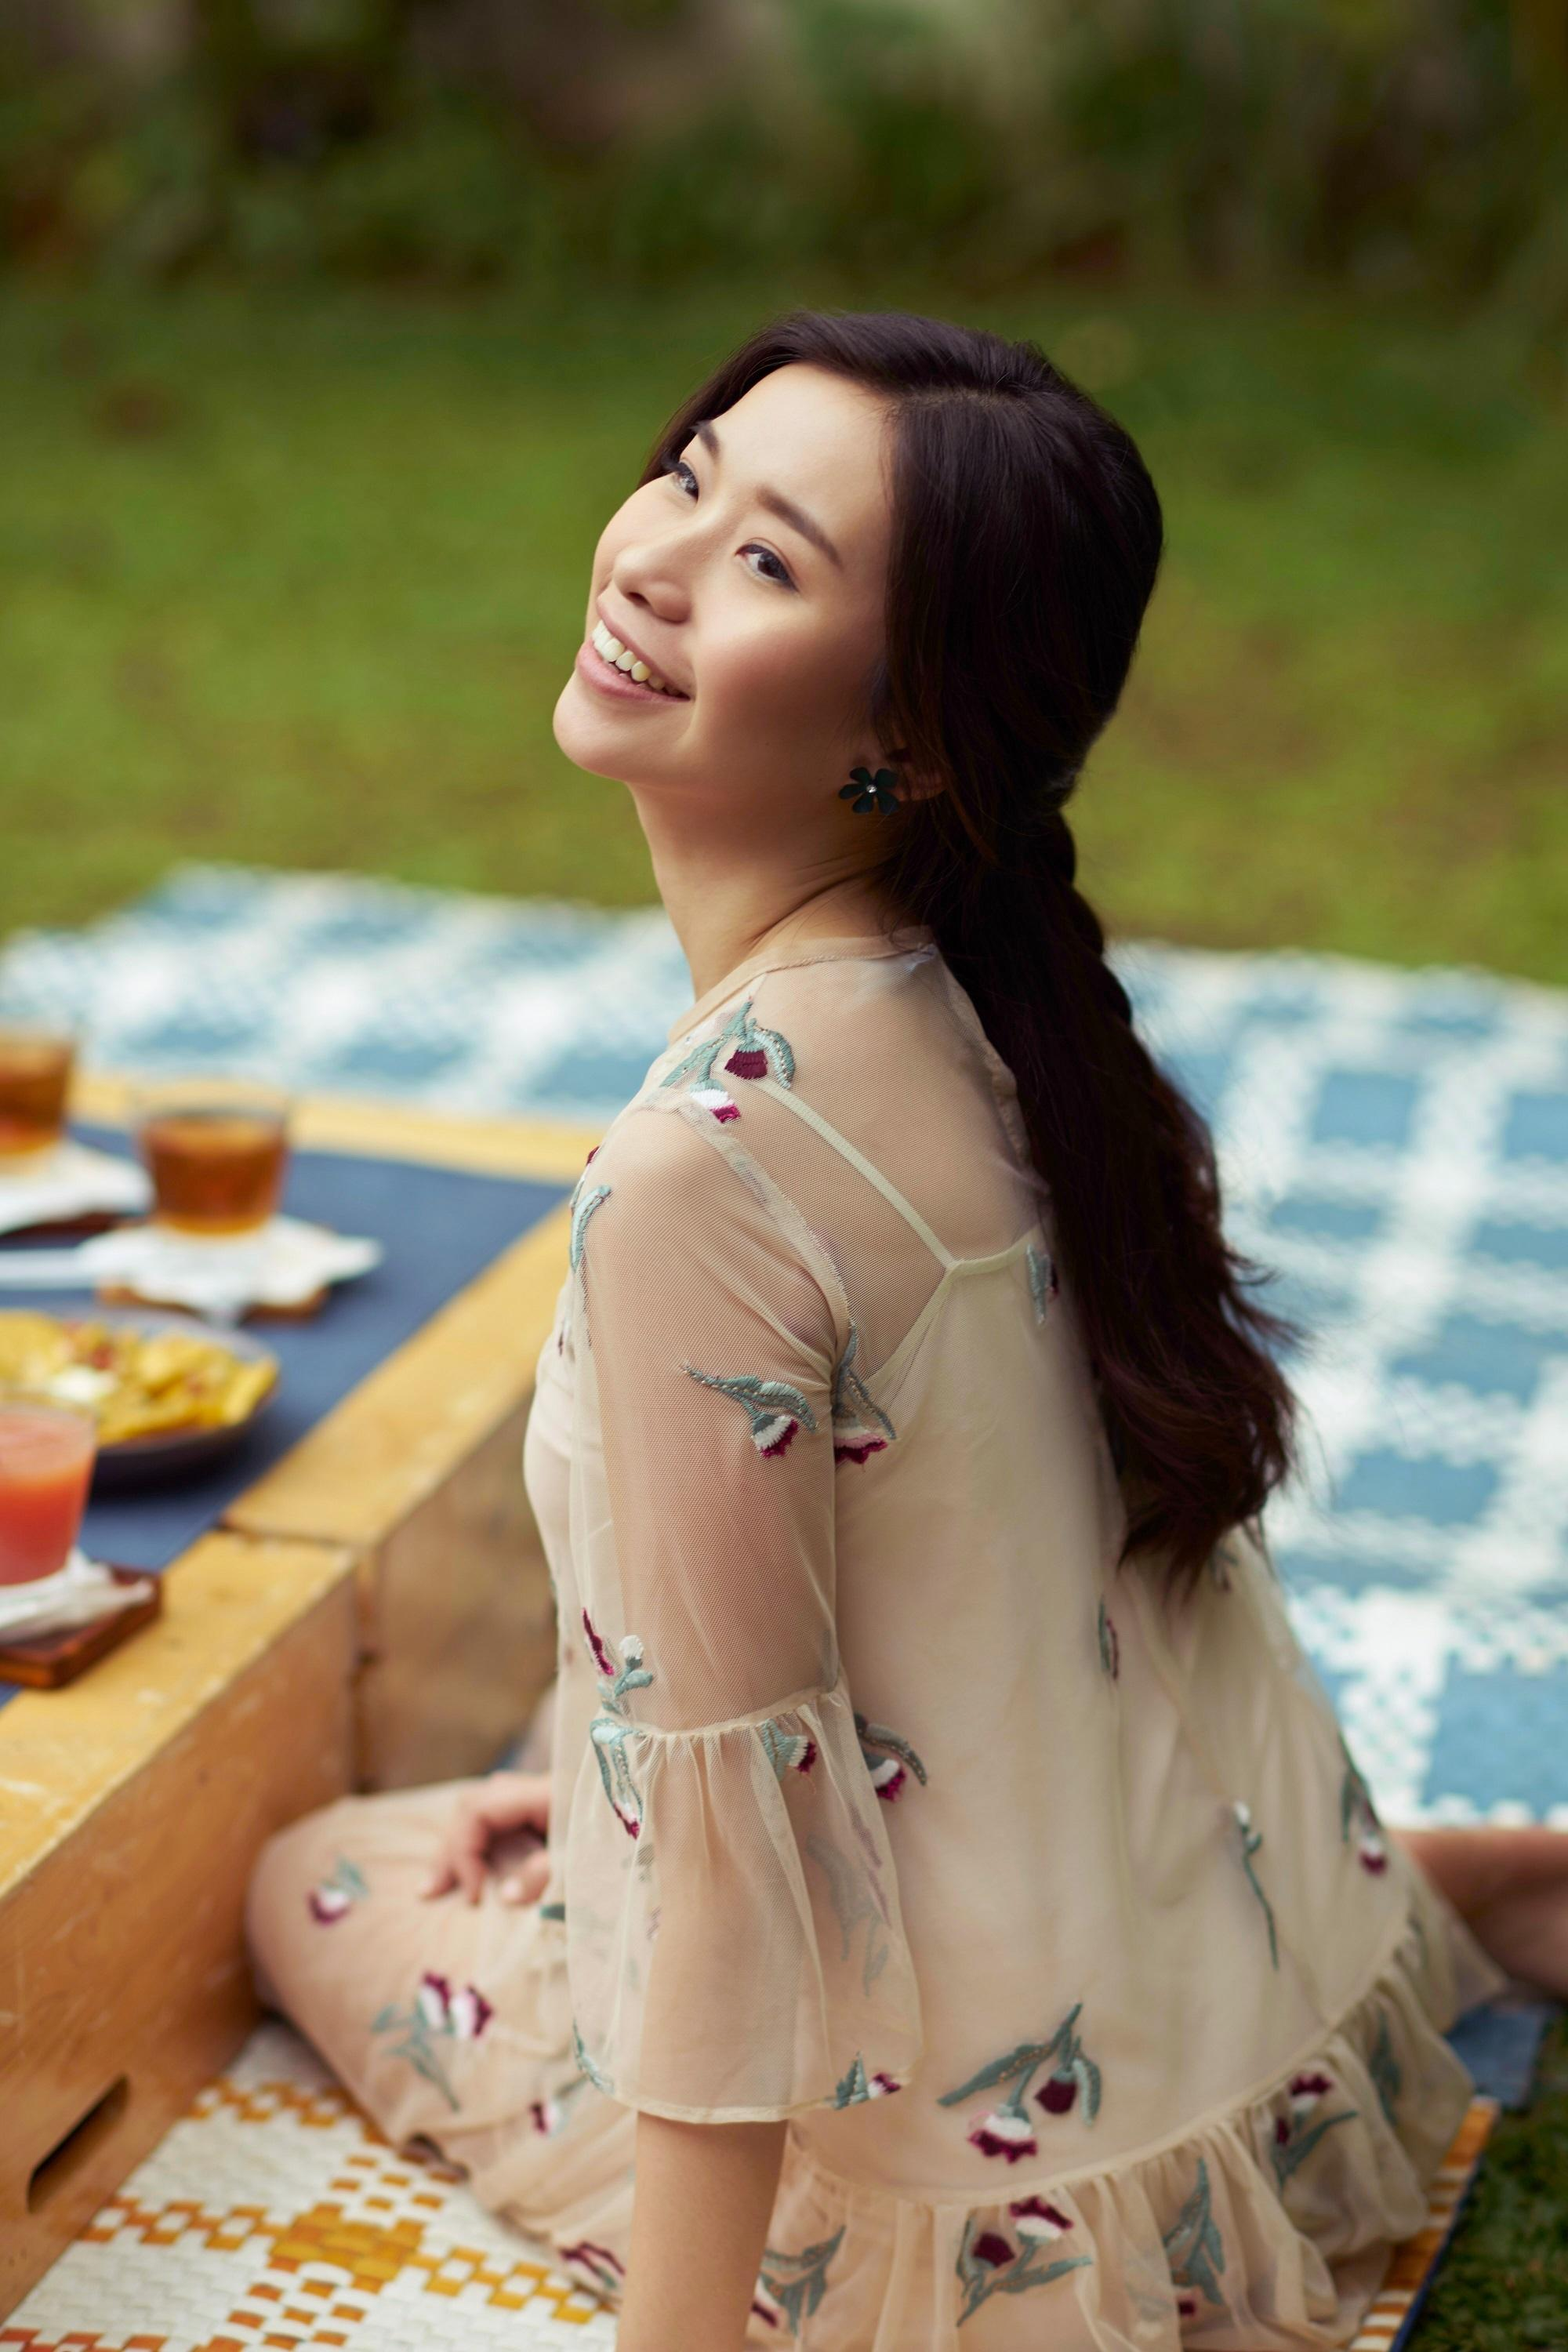 Valentine hairstyles: Asian woman with dark hair in half up braid wearing a dress and having a picnic